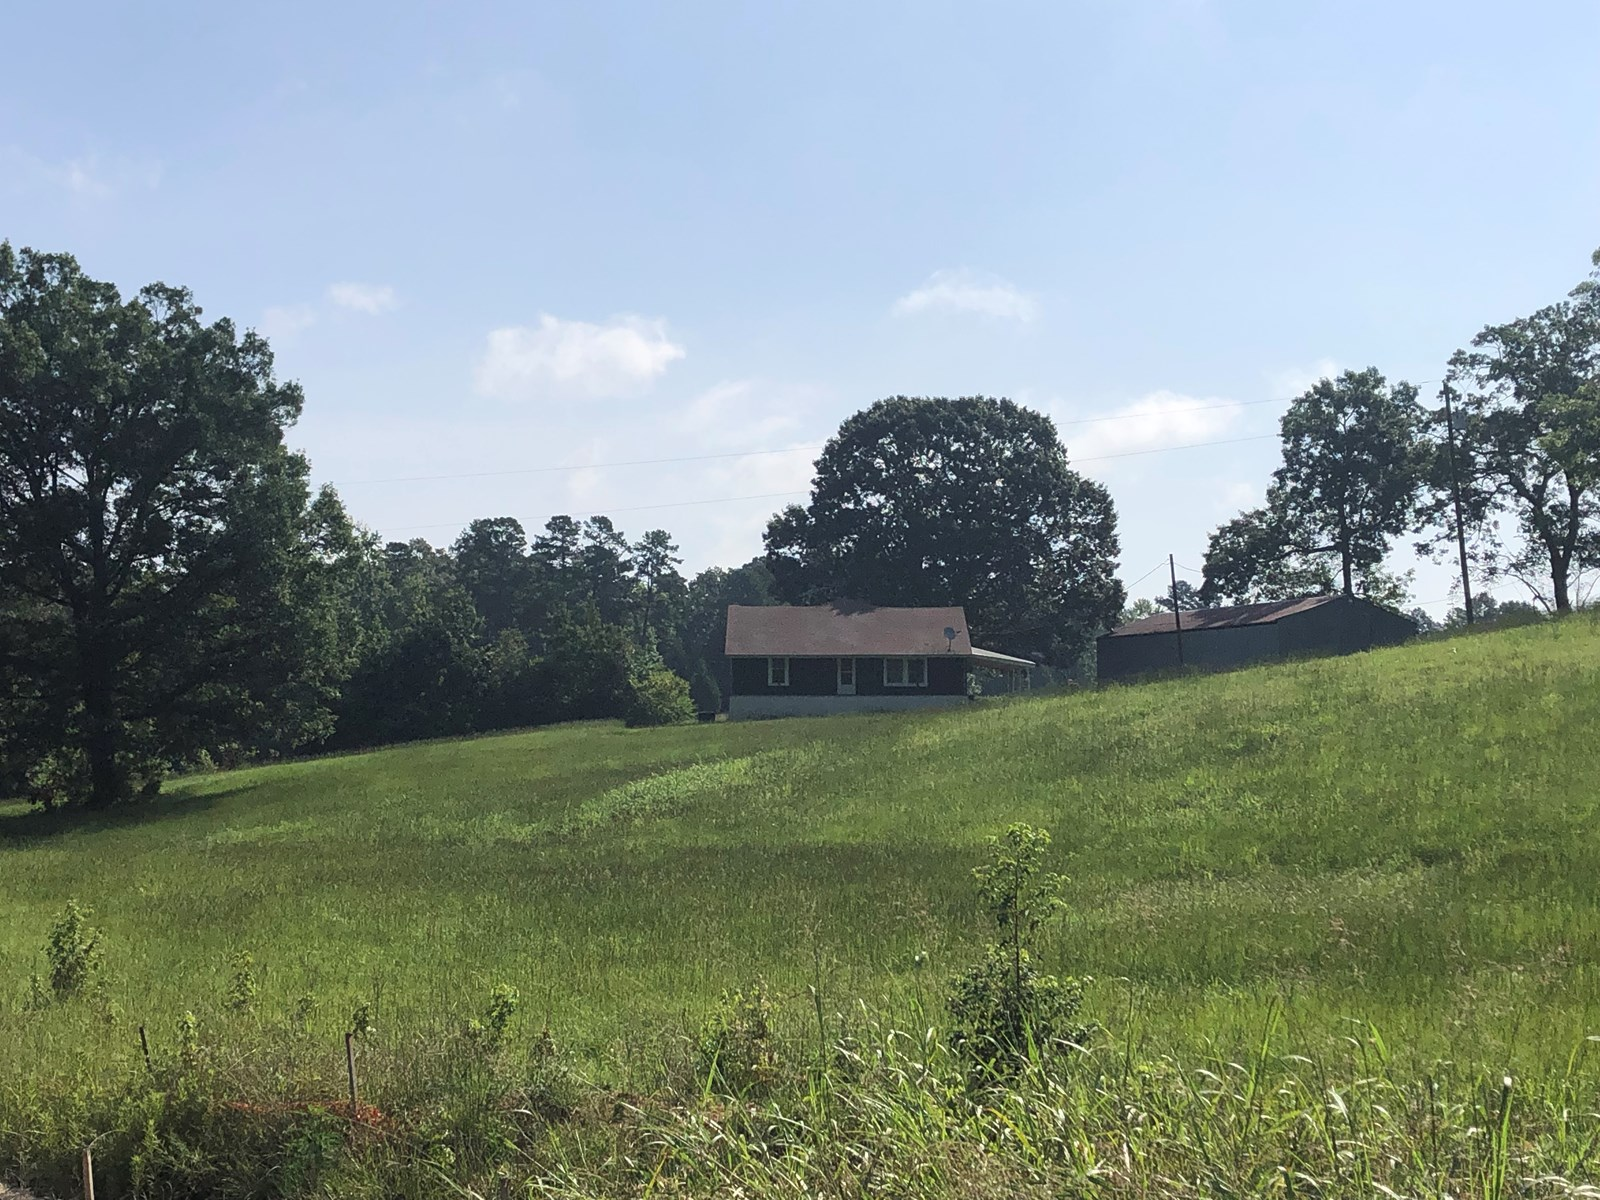 Country Home on Acreage in Cass County, TX